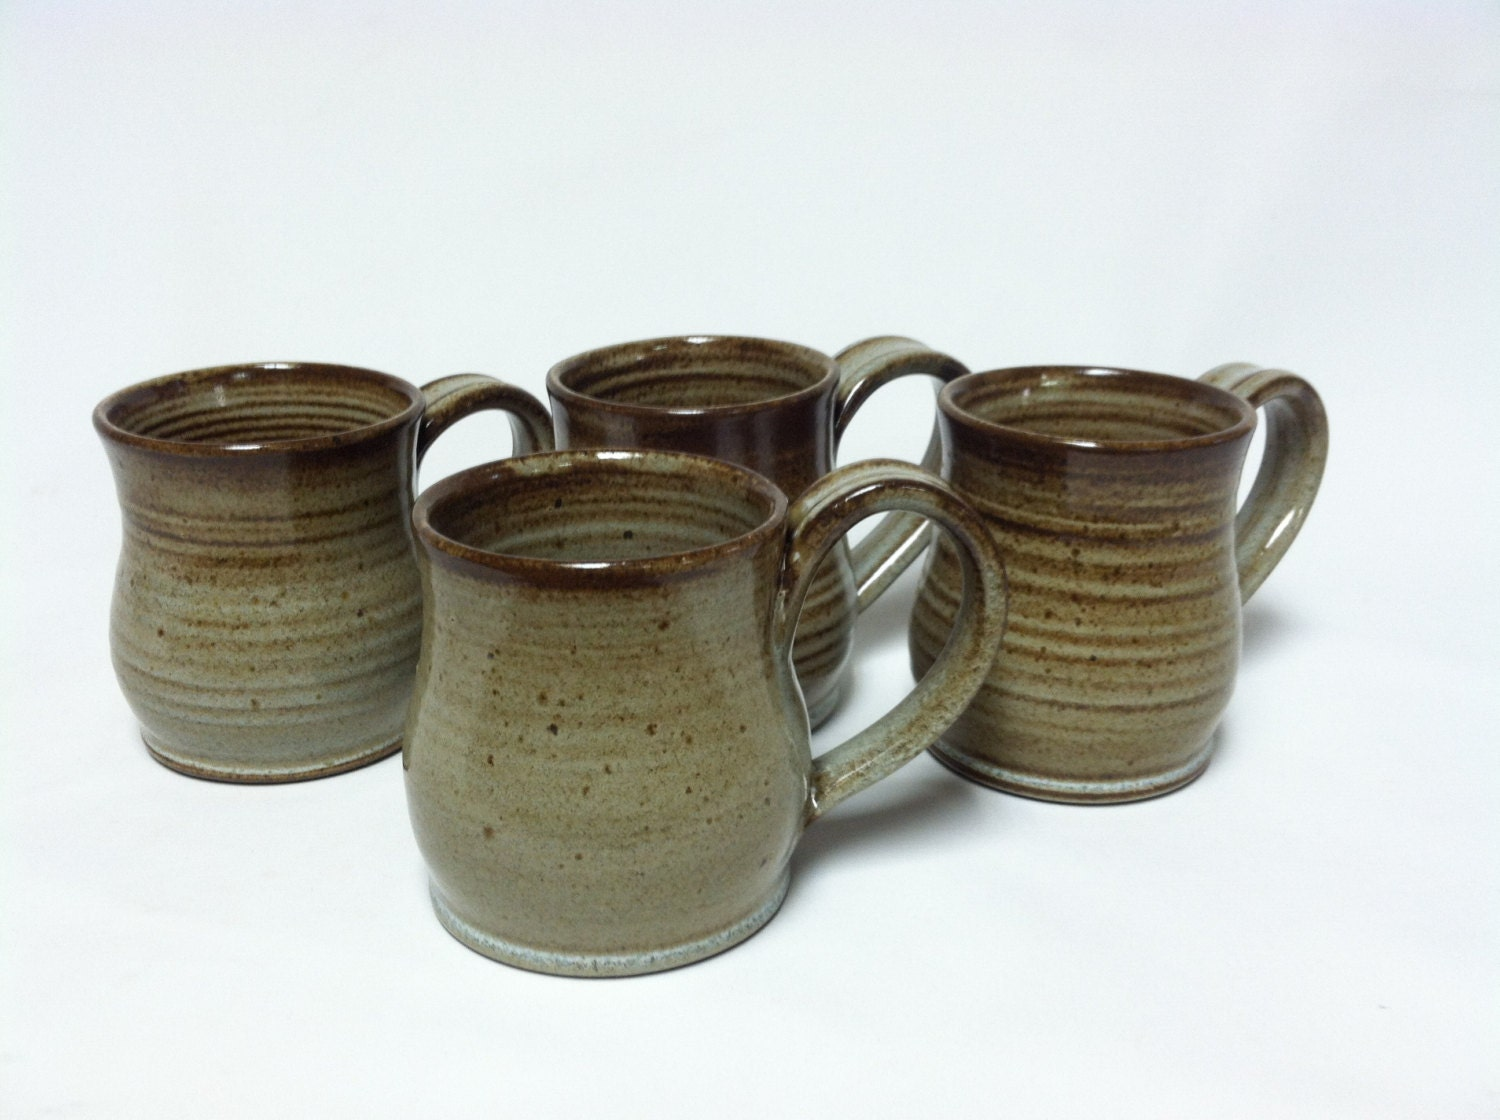 Beautiful Le Creuset stoneware coffee mug with a pearlescent dark green finish on the outside and solid light beige interior. Excellent condition with no chips, cracks, or scratches!